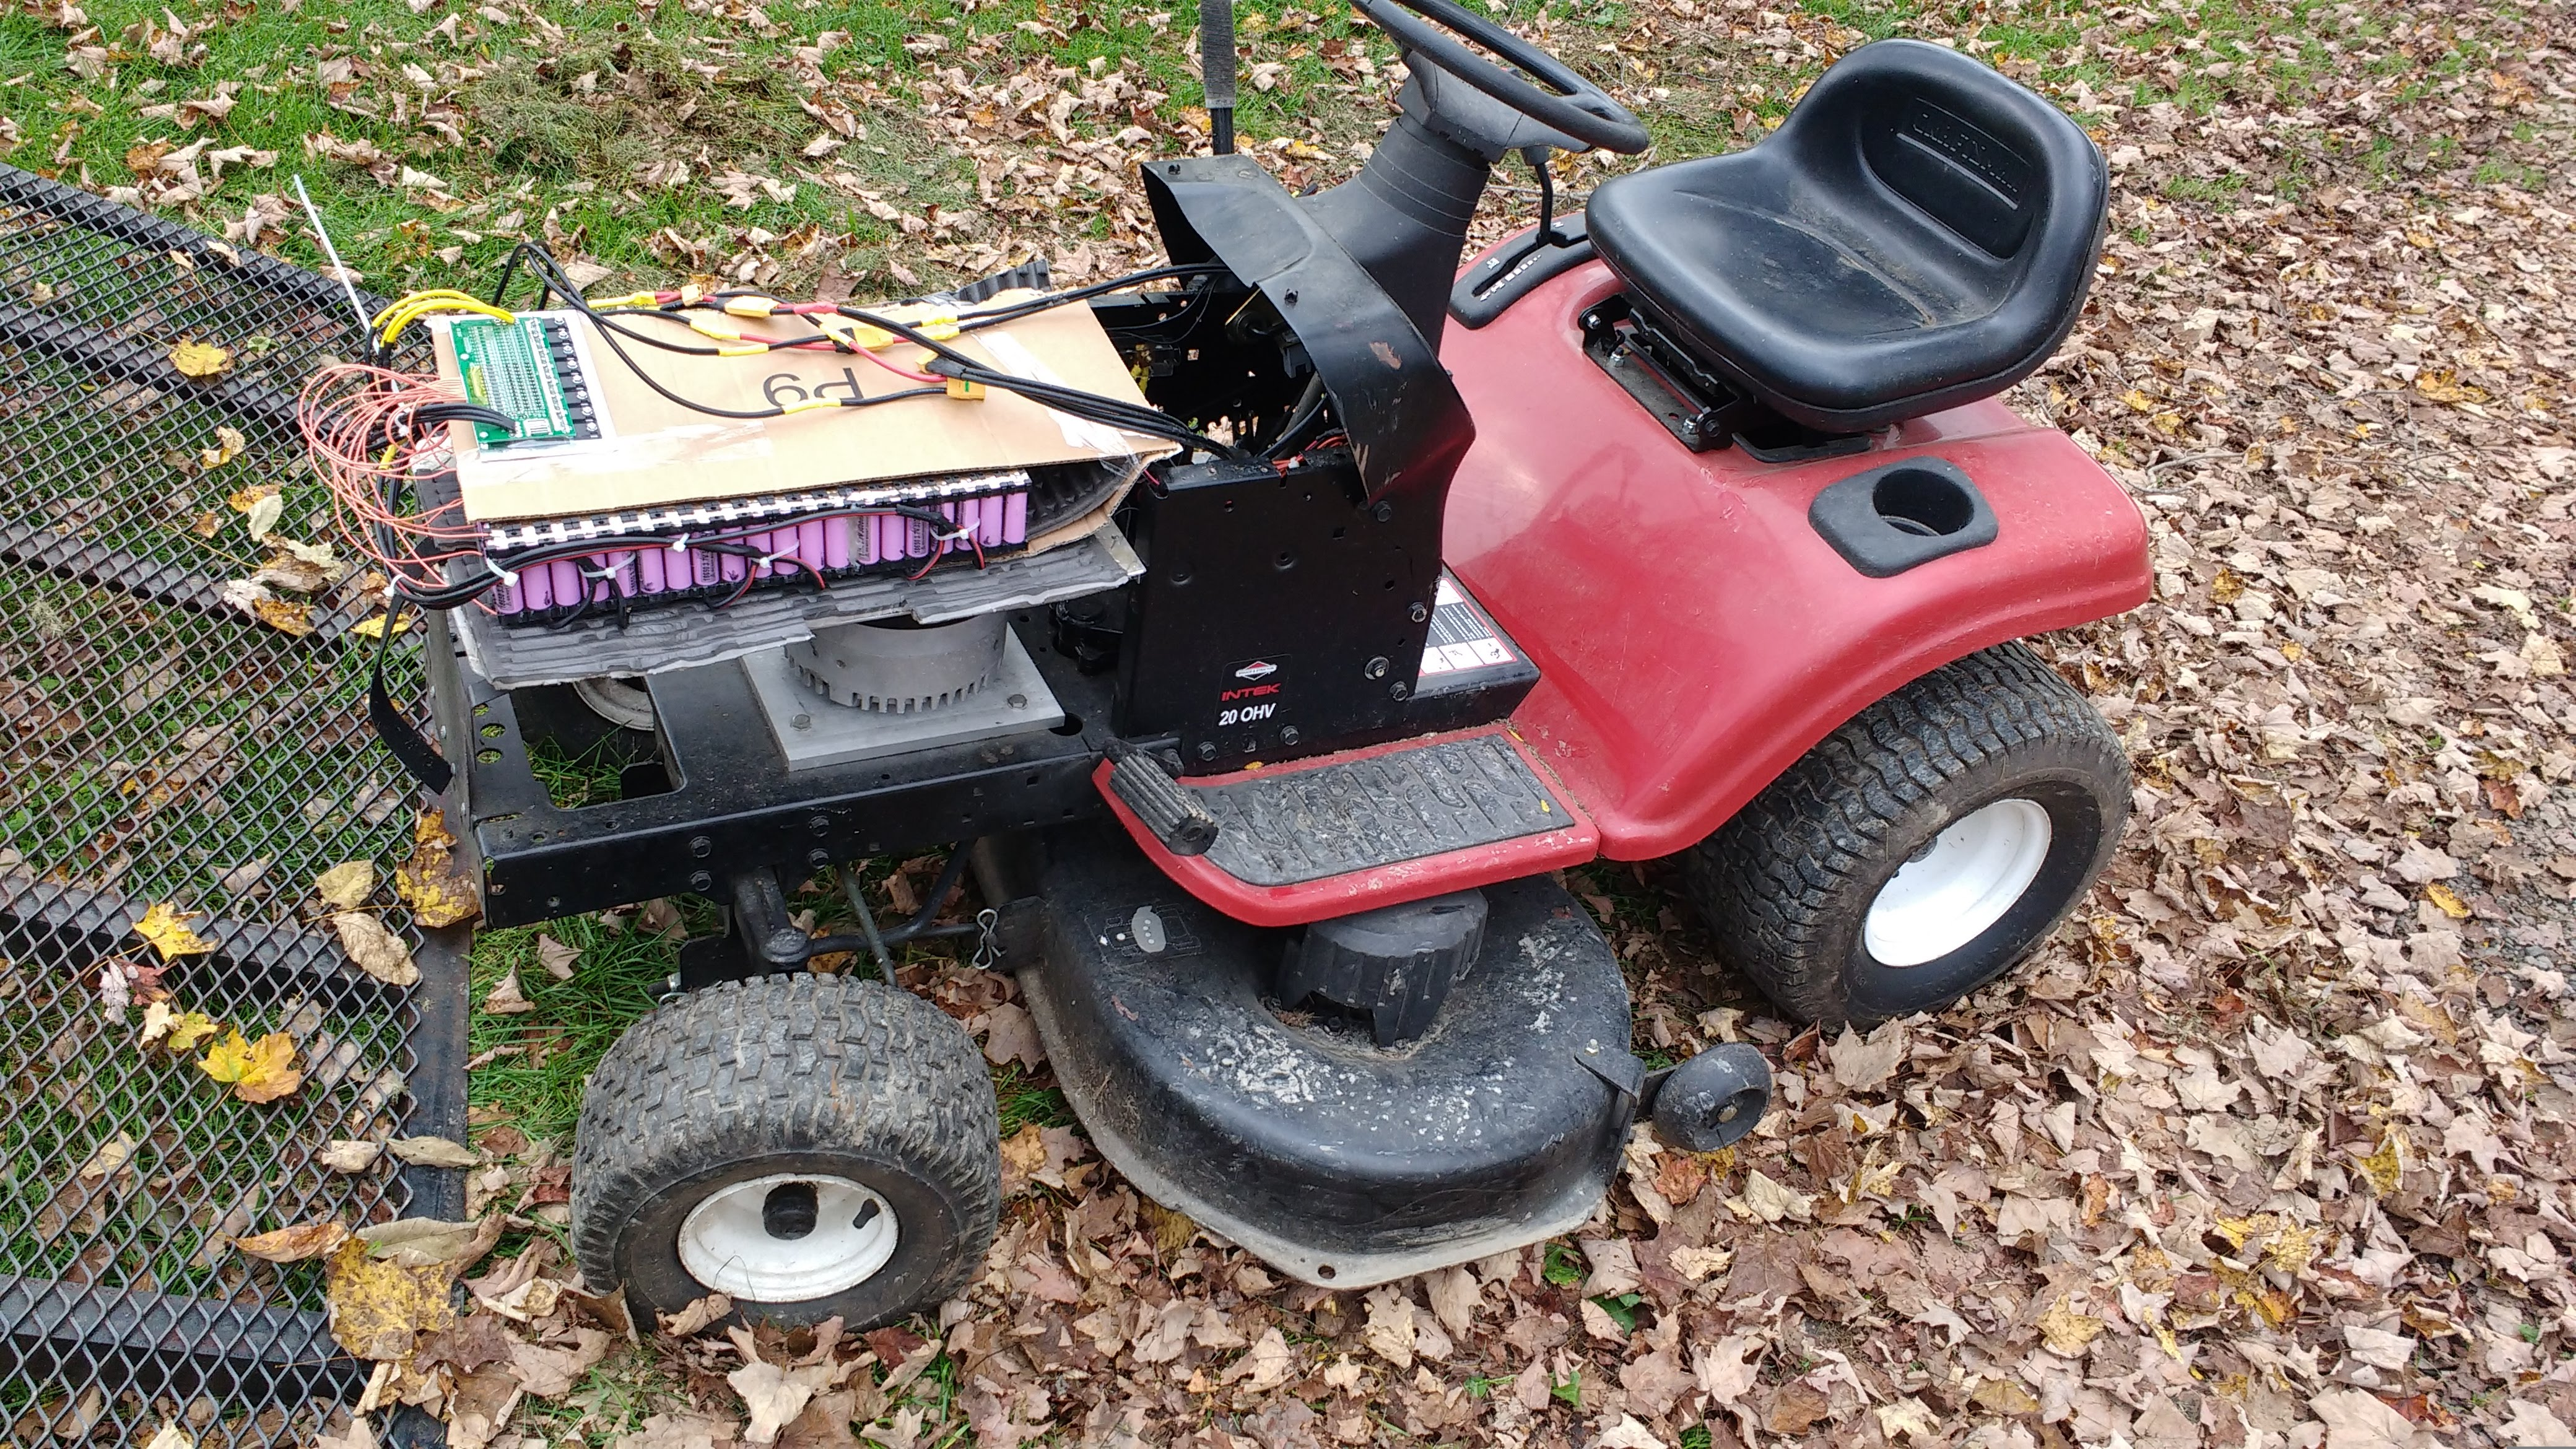 Our Not-So-Amish Paradise : Building A 5000W Electric Lawn